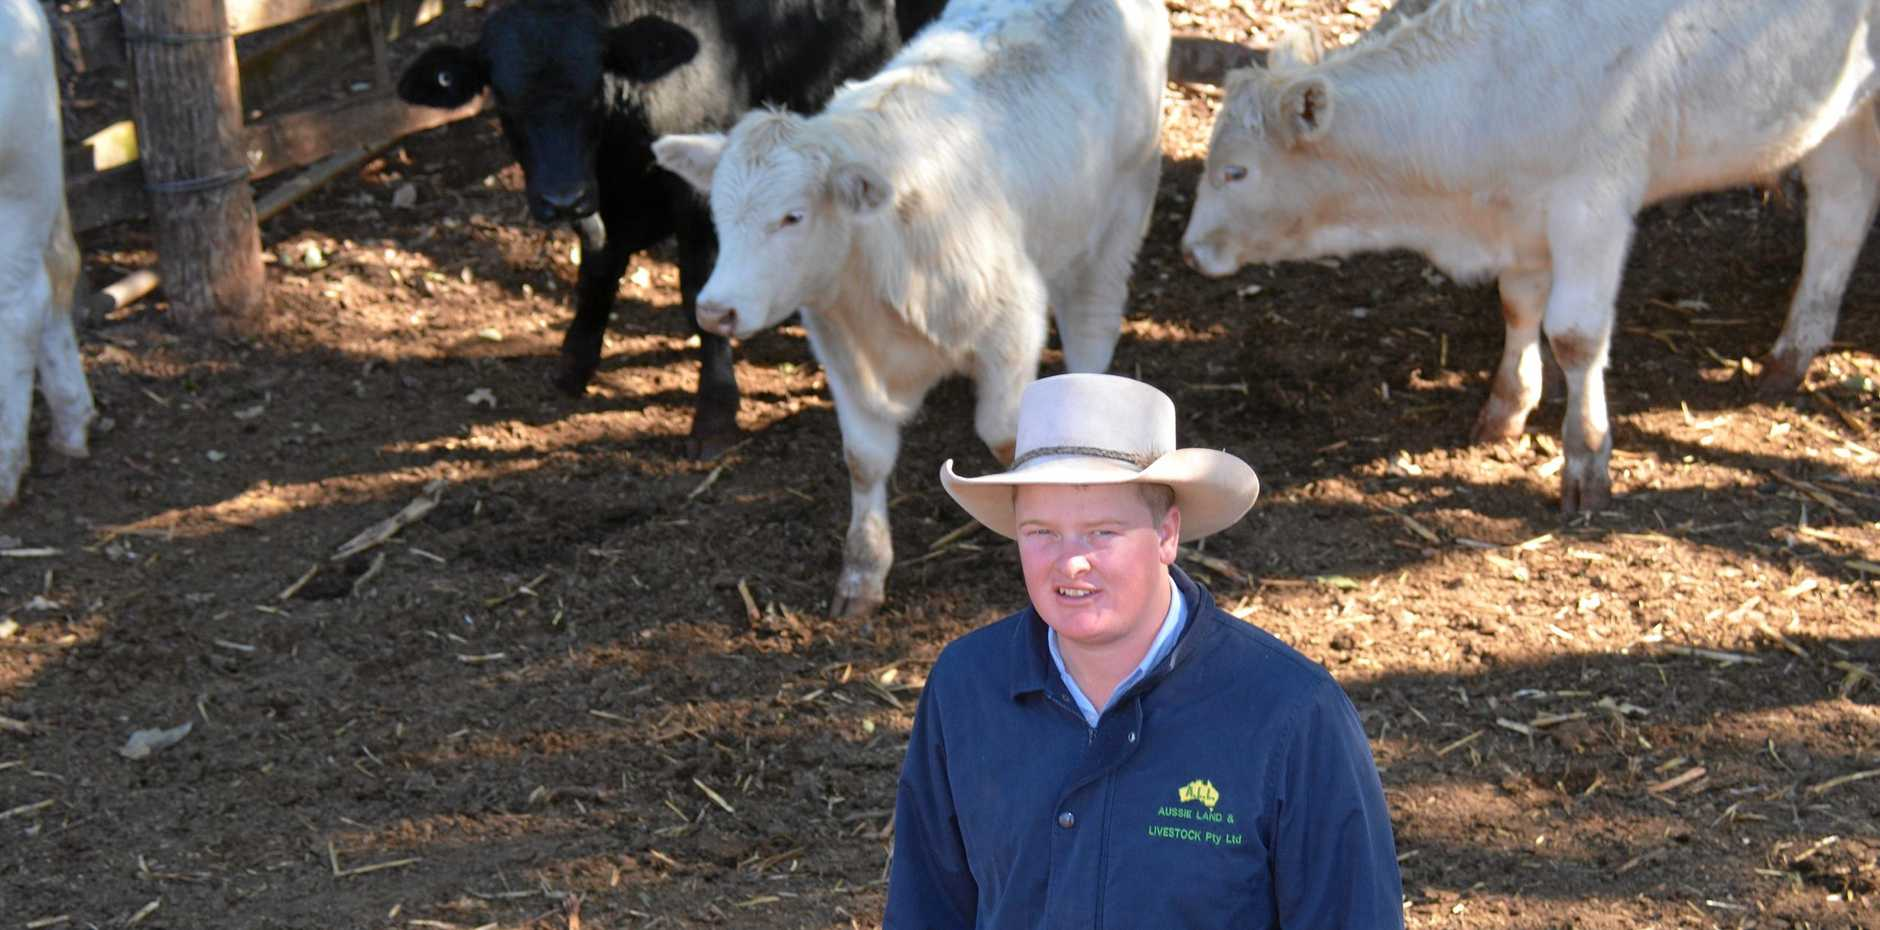 Aussie Land and Livestock agent Corey Evans said it was important to stay safe in farm environments.